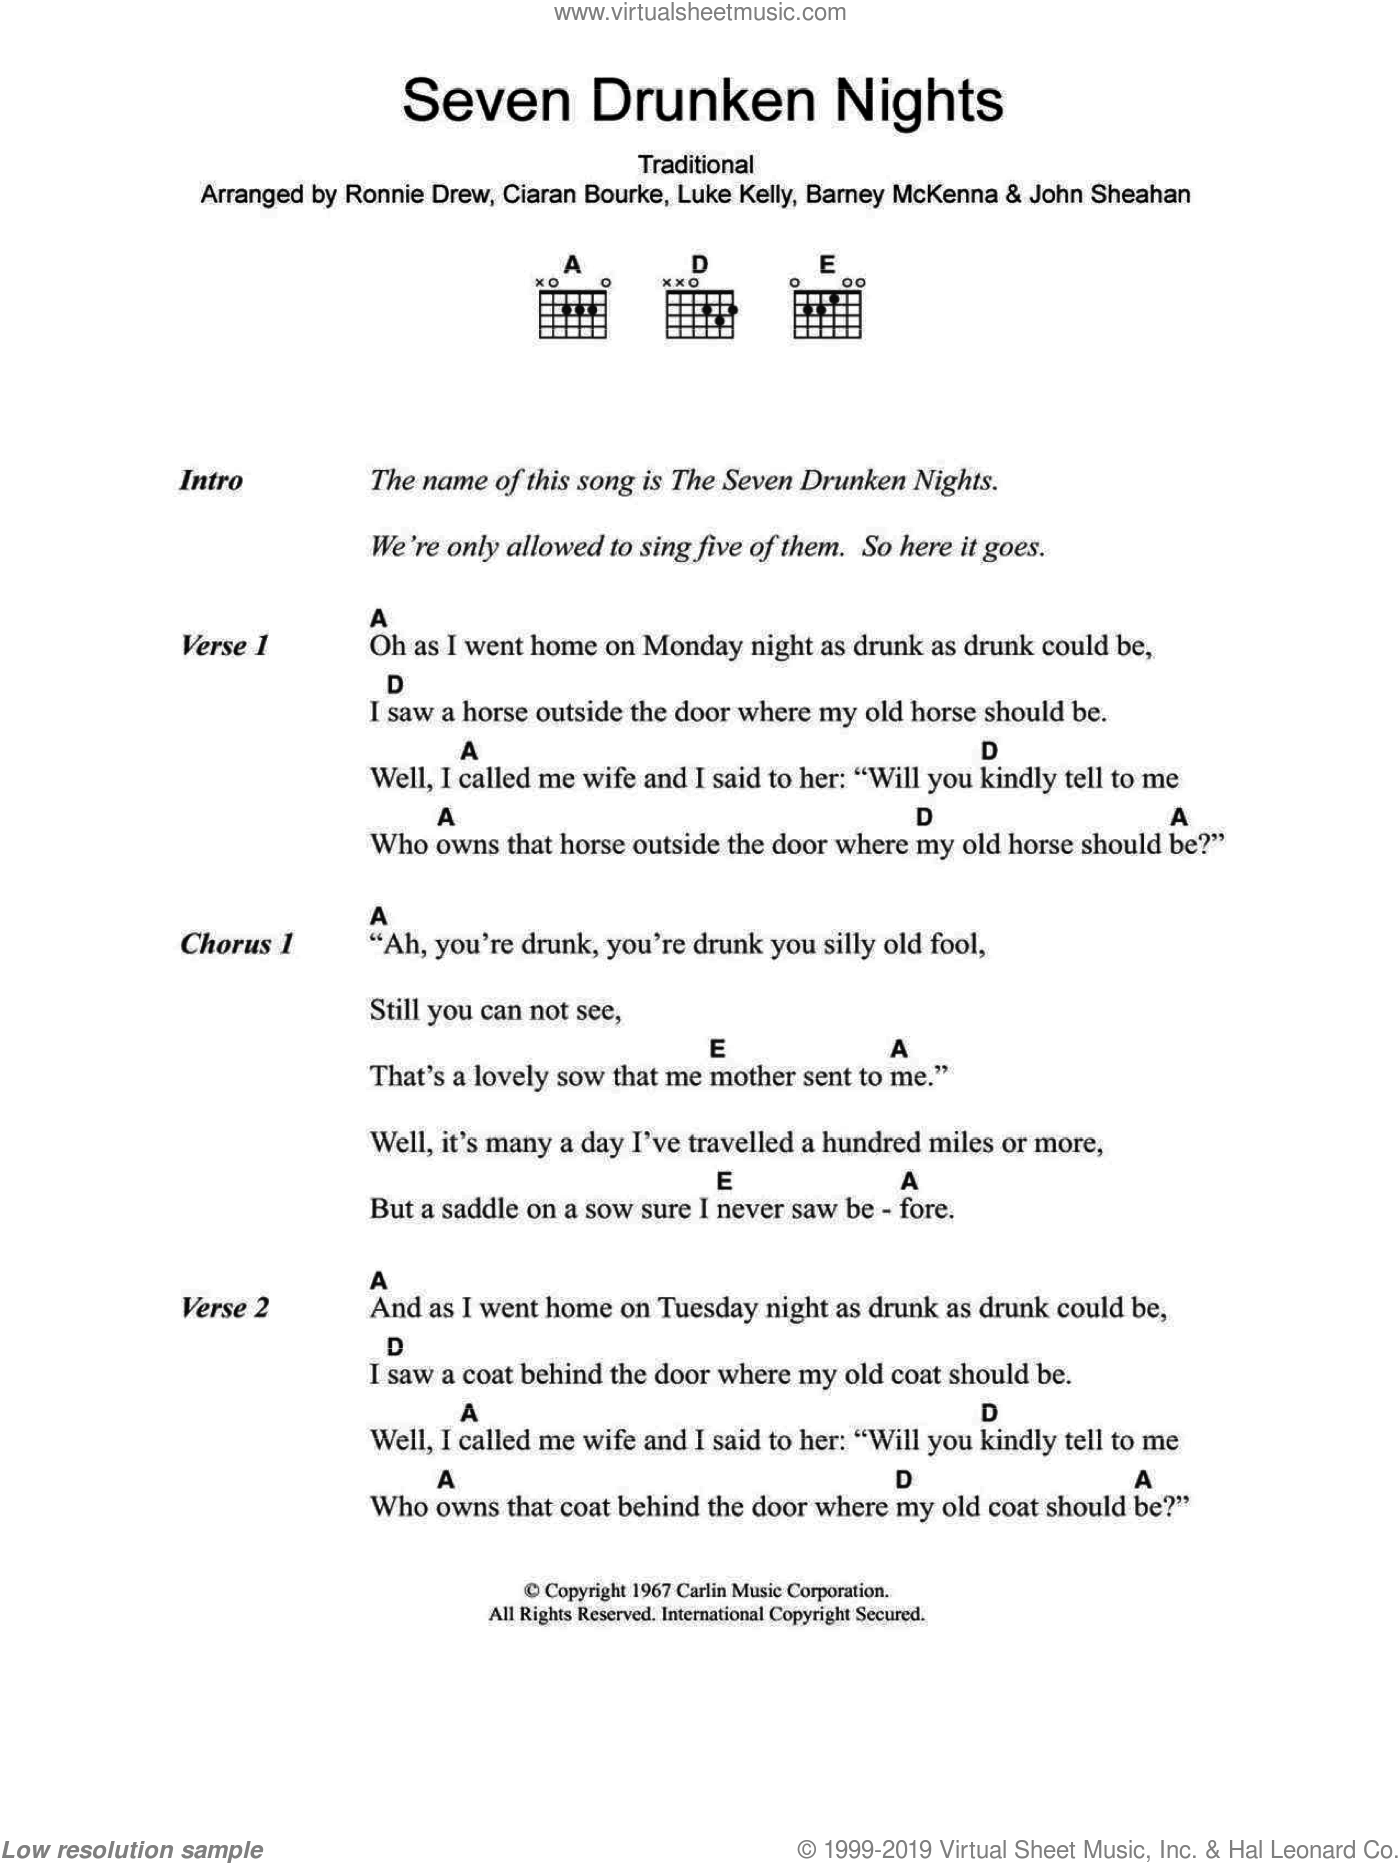 Seven Drunken Nights sheet music for guitar (chords)